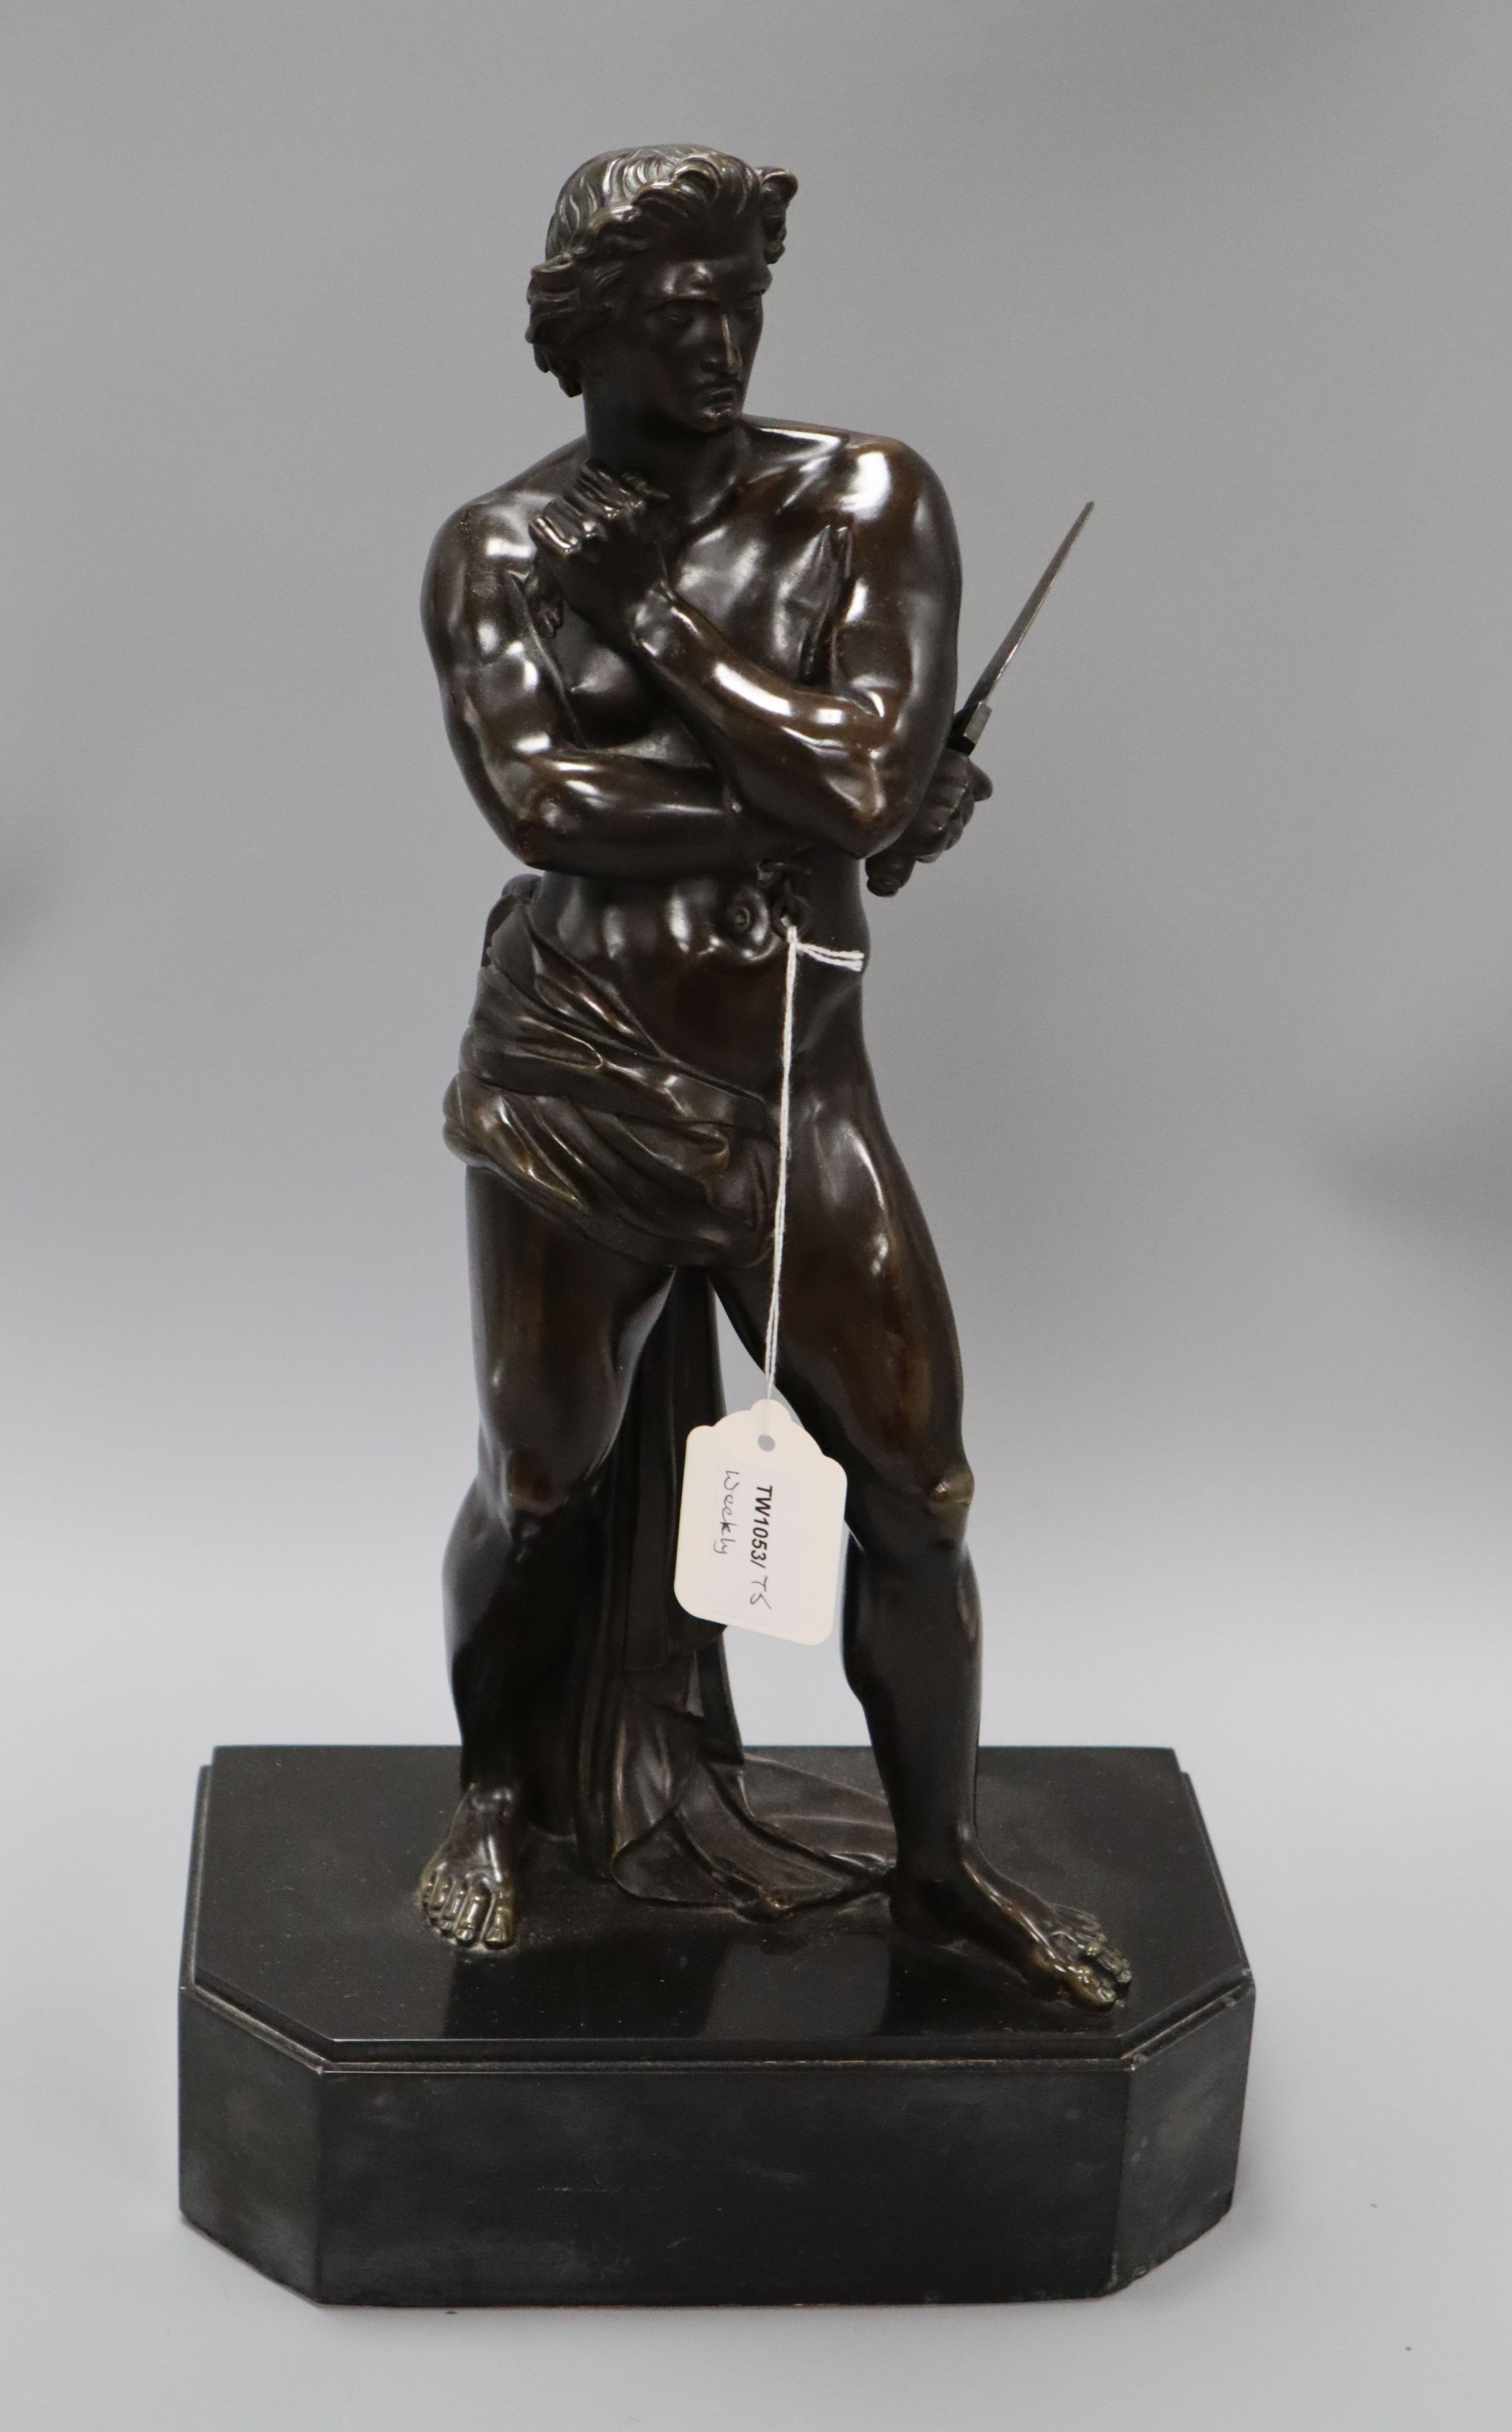 Lot 60 - A 19th century bronze figure of a classical warrior, numbered 2269 height 46cm